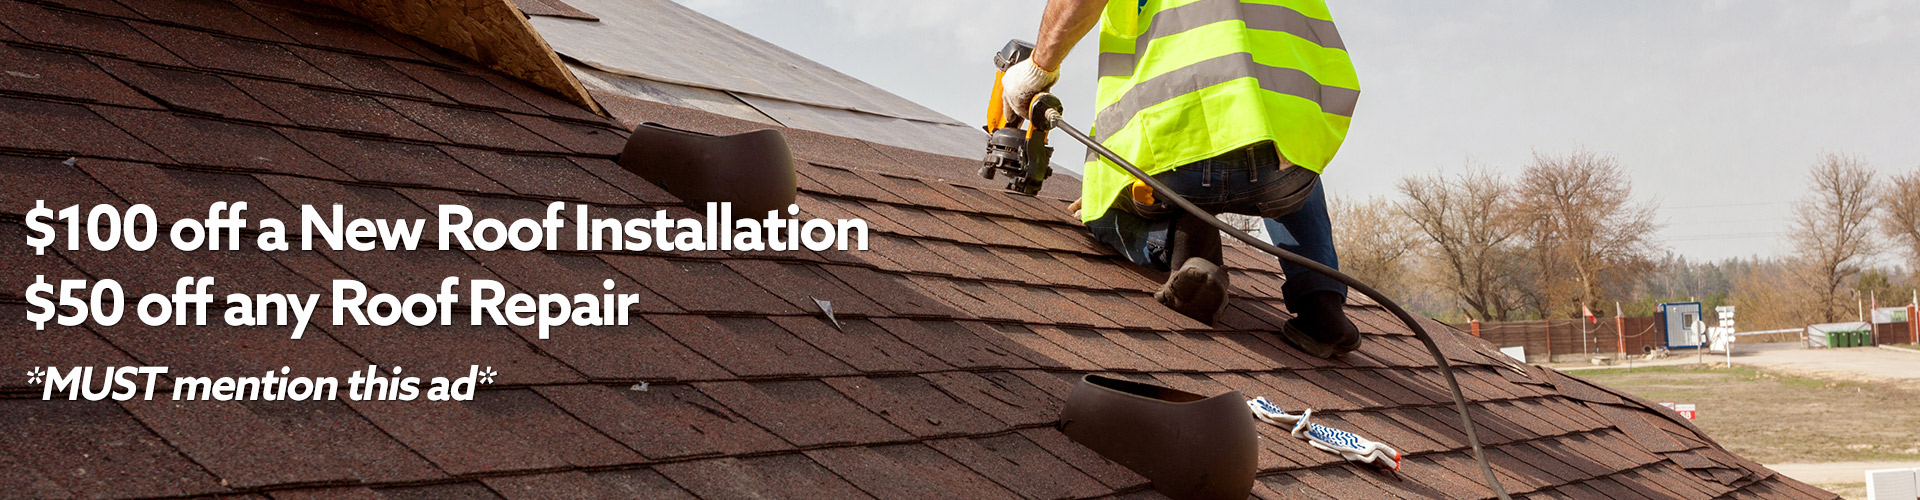 Roofers In Baltimore, MD | Roofing U0026 Siding Contractor